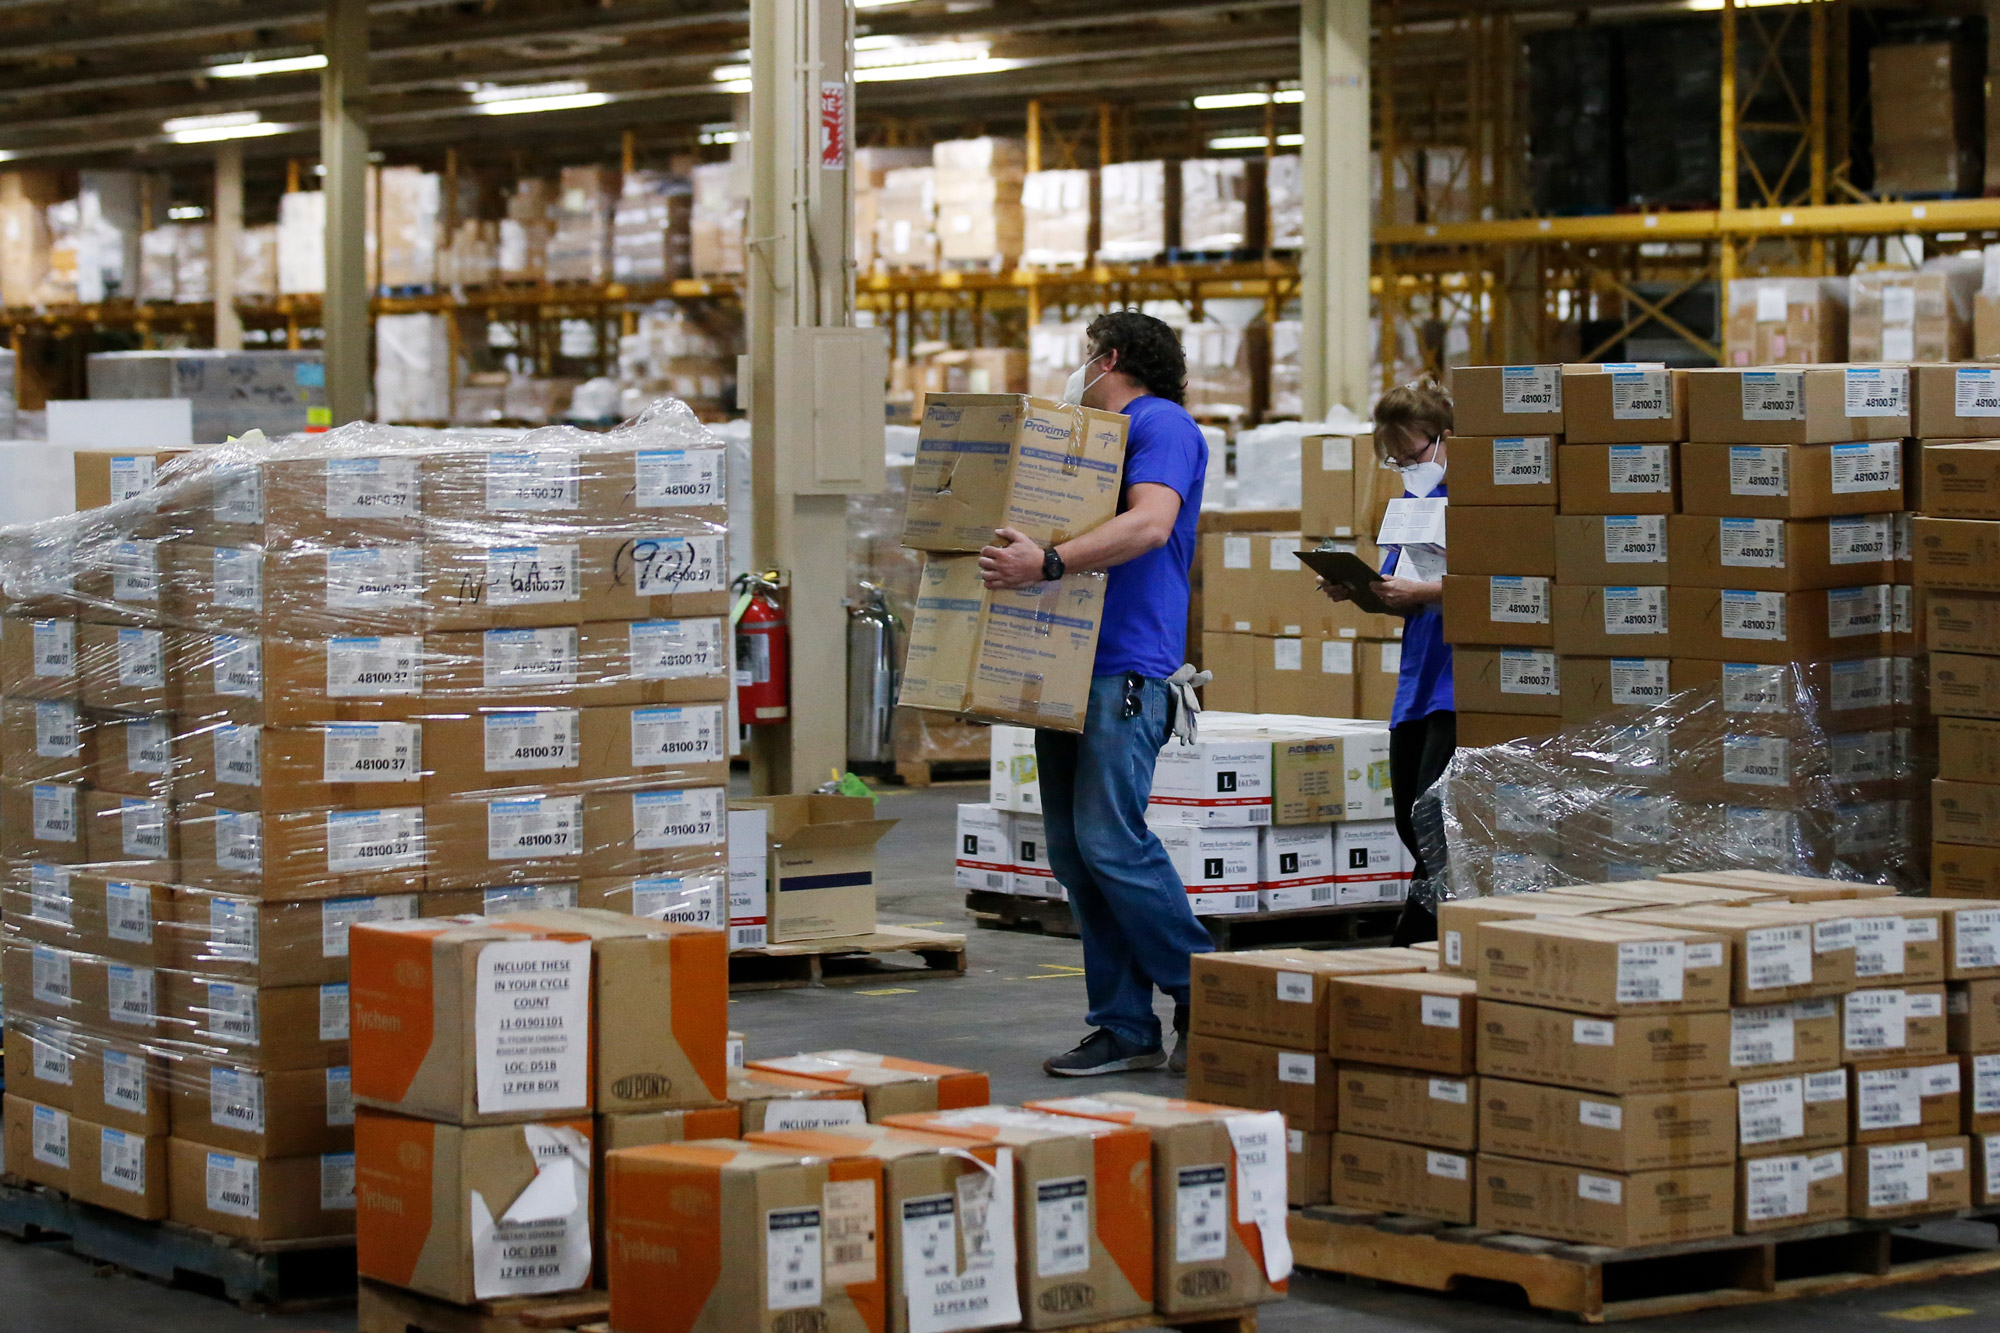 Workers carry boxes at Oklahoma's Strategic National Stockpile warehouse in Oklahoma City on April 7.